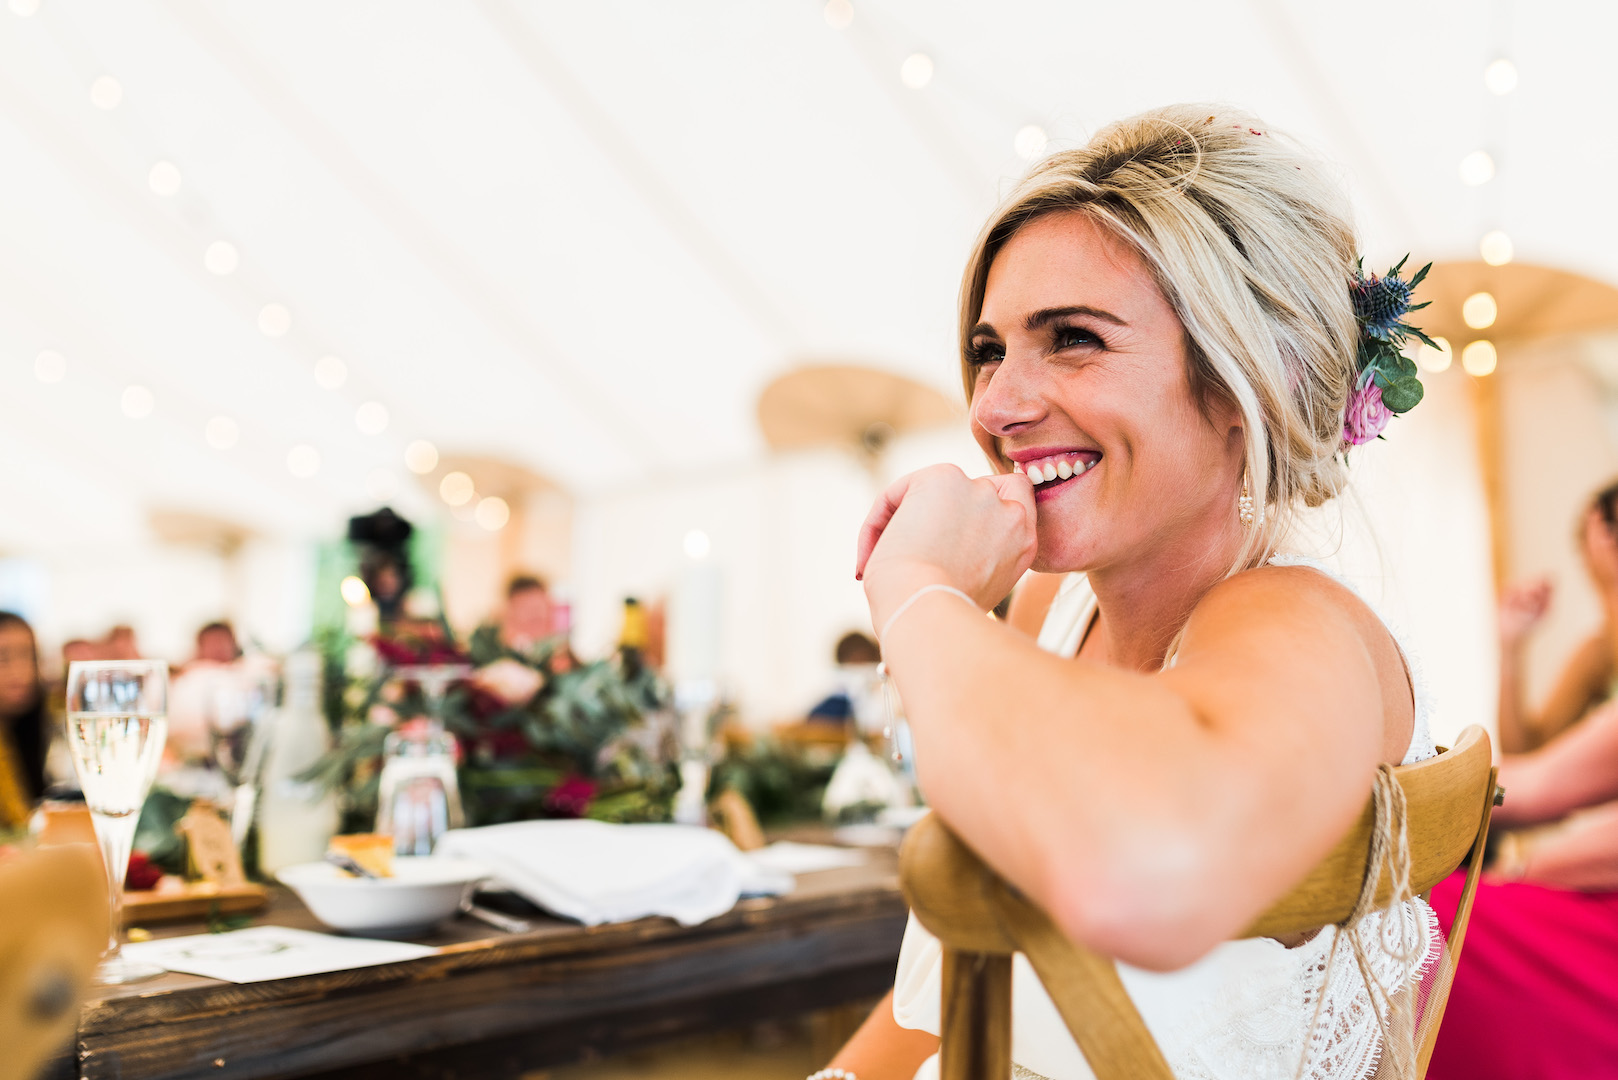 Sarah and Joe's PapaKata Sperry Wedding: Bride with Sperry tent interior